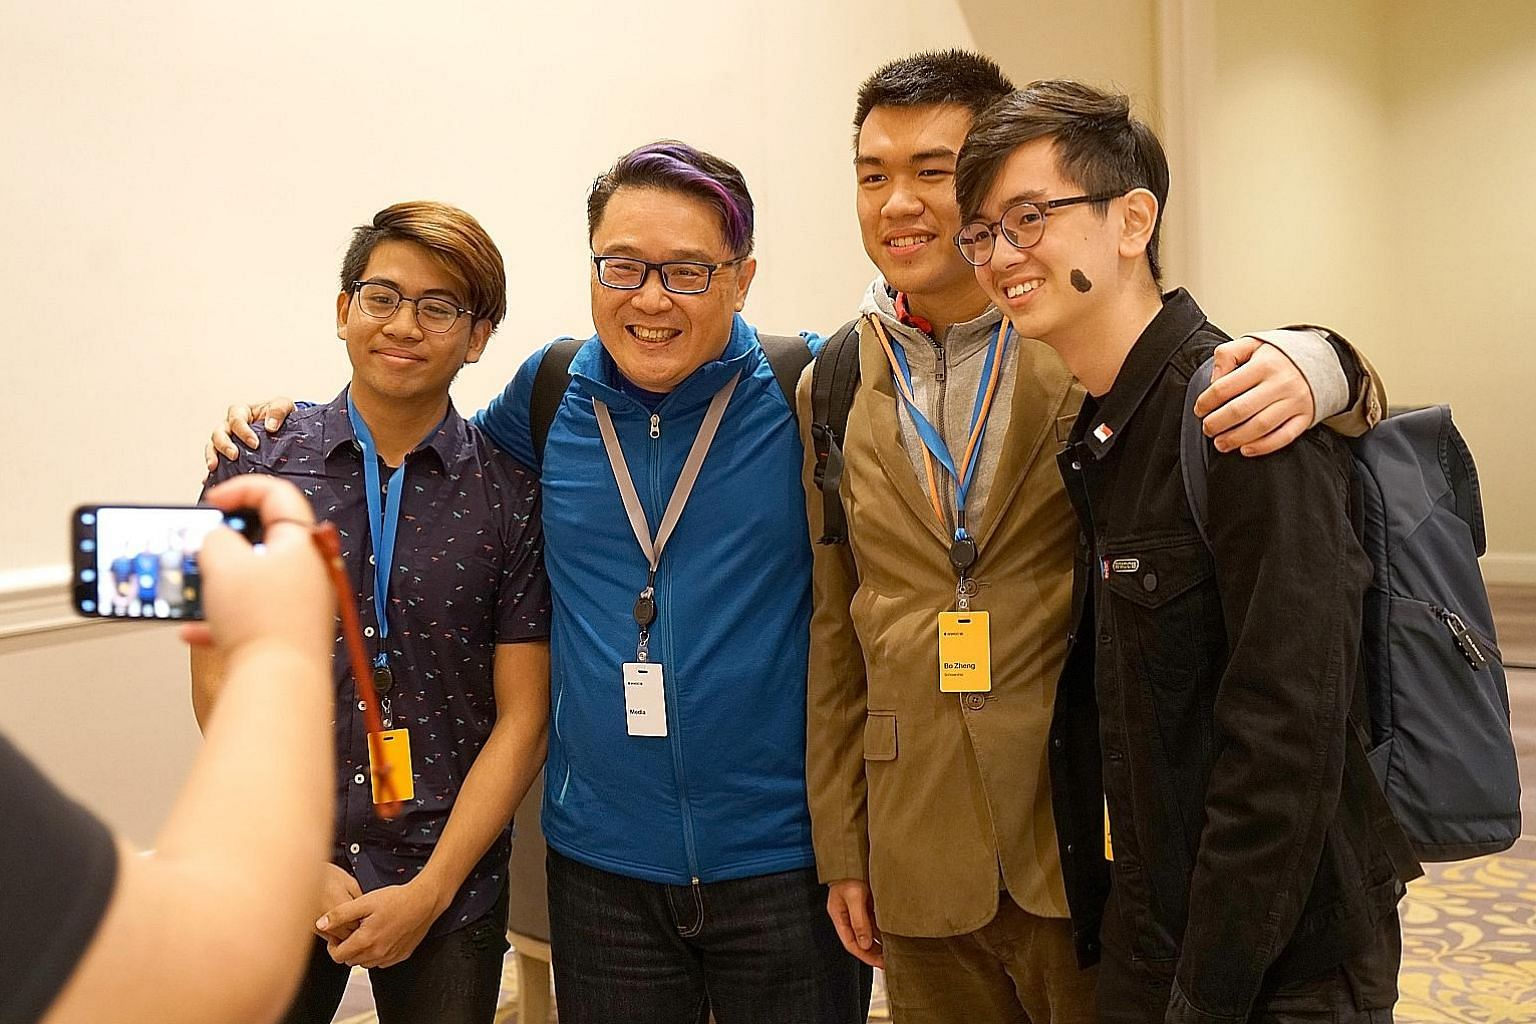 Singapore blogger Mr Brown (in blue) with (from left) young developers Dalton Ng, Zhang Bozheng and James Lim, who attended the Worldwide Developers Conference (WWDC) under Apple's WWDC Scholarships scheme.